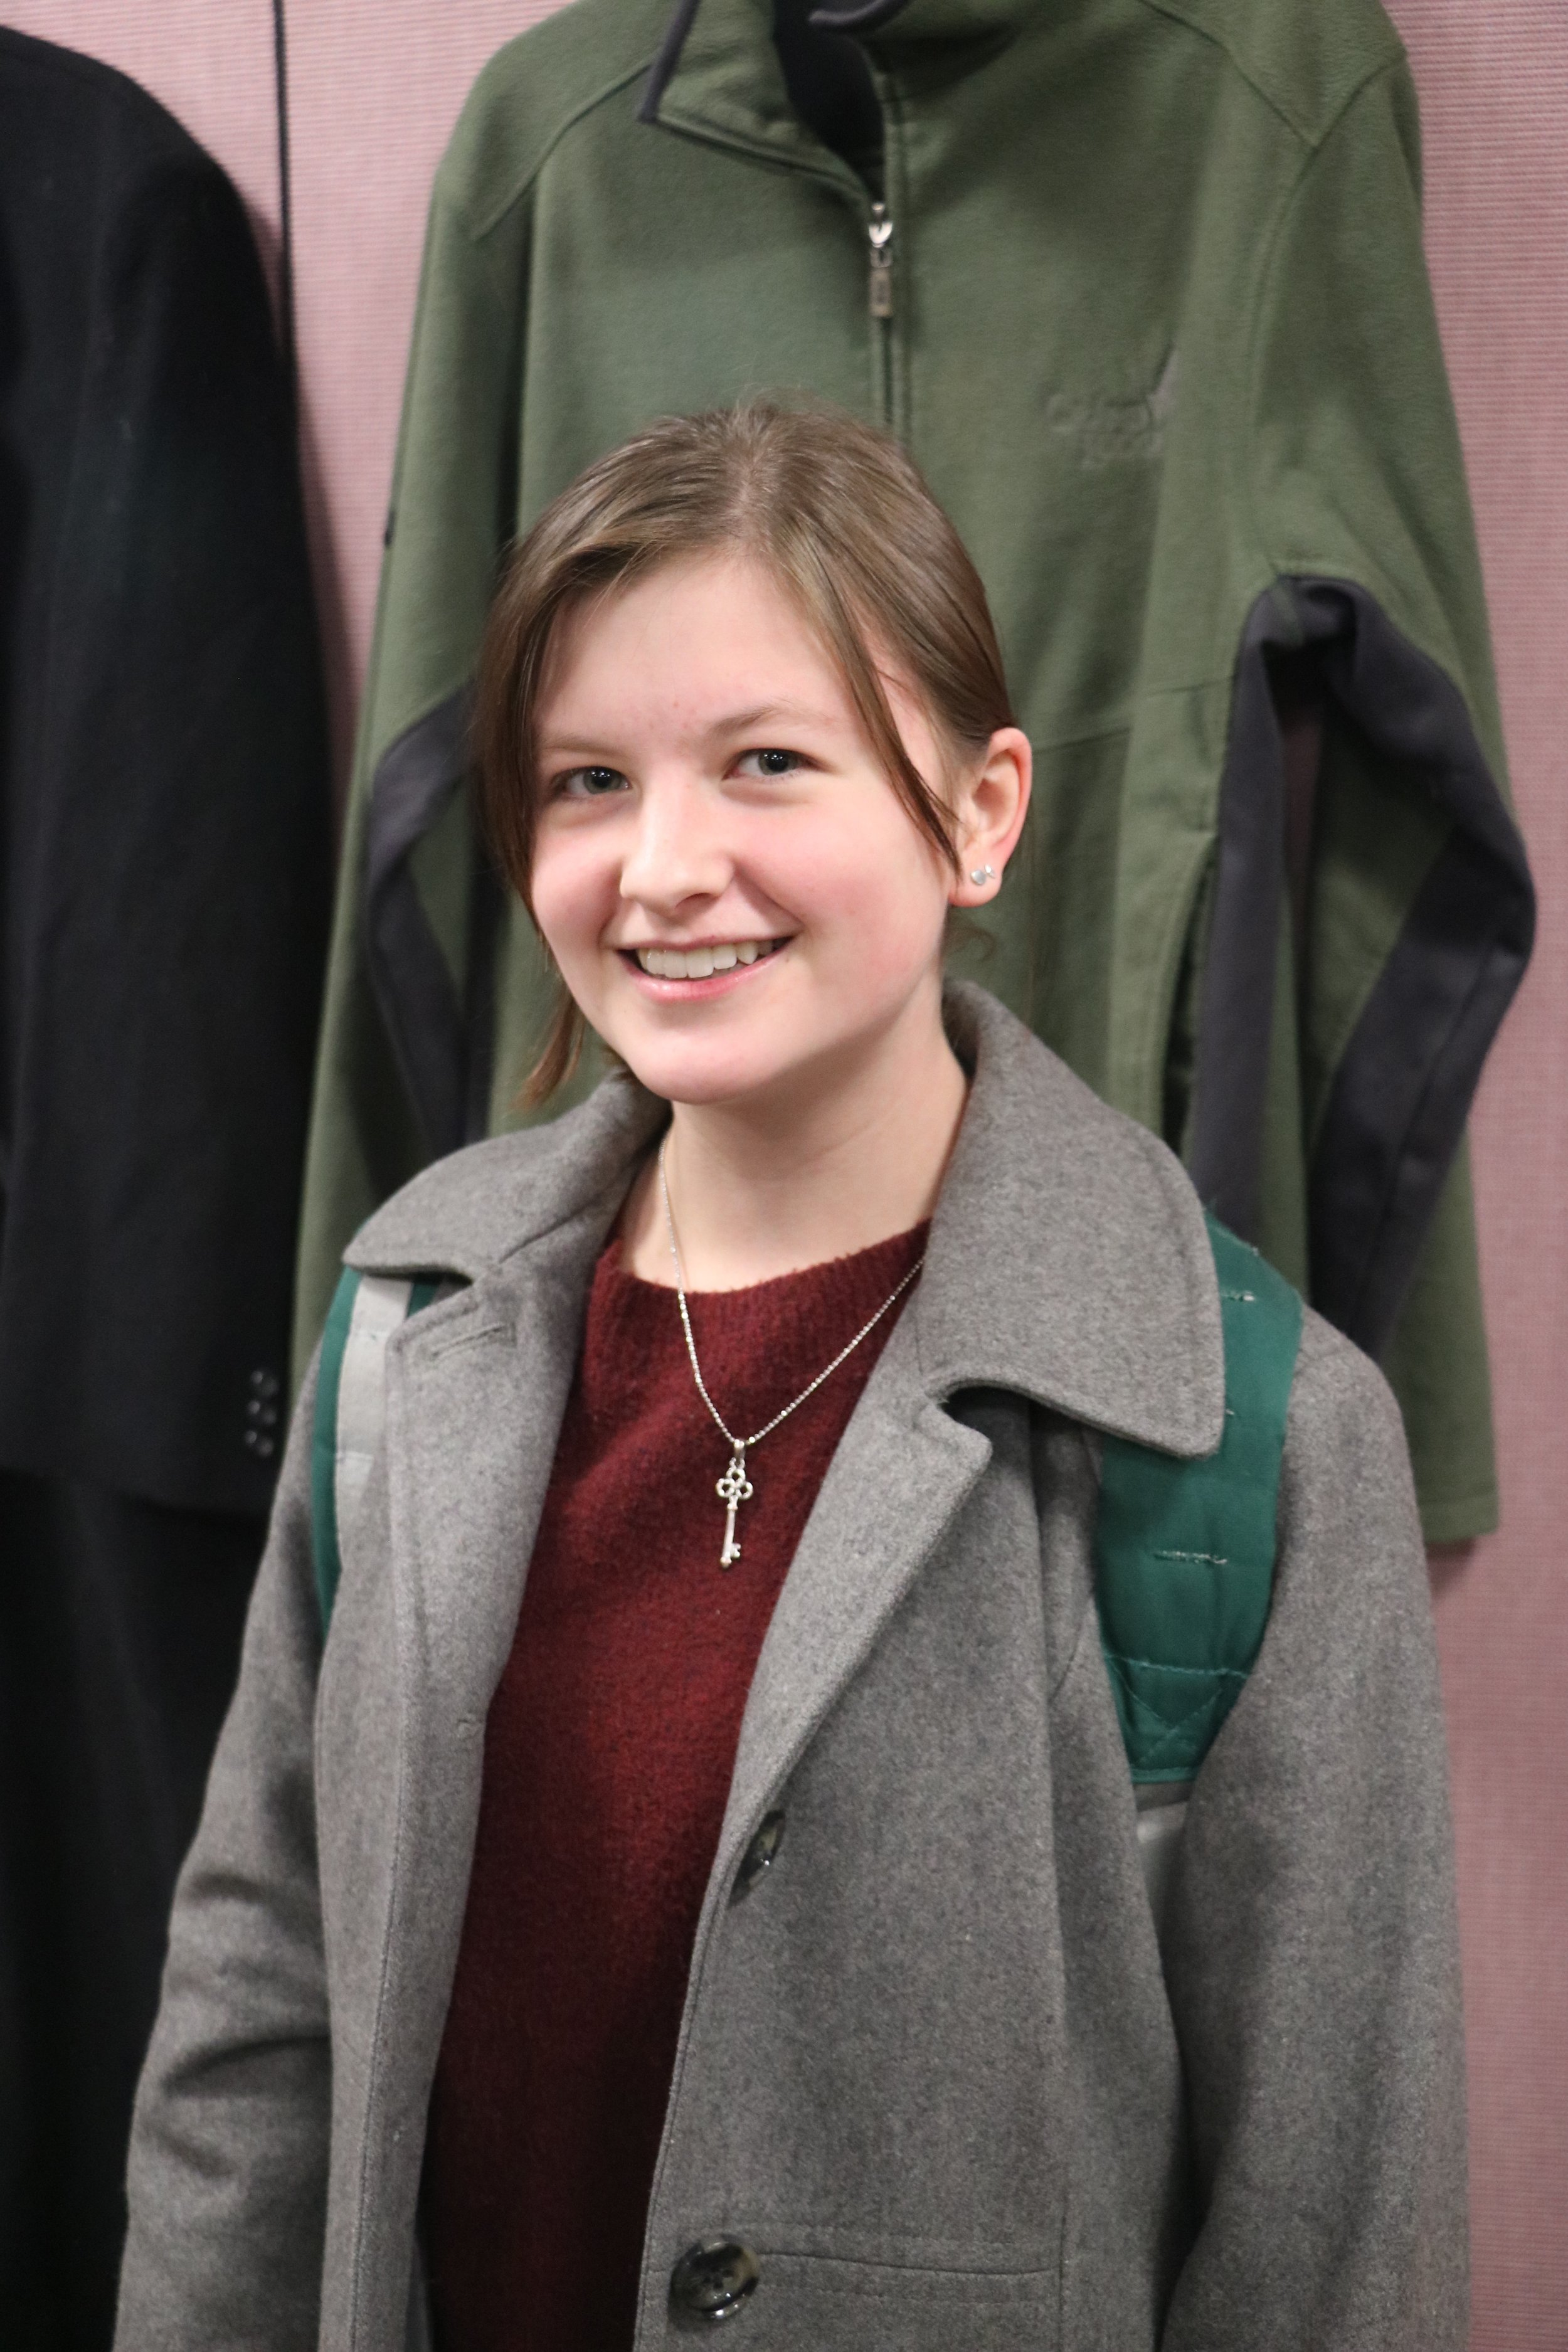 Lexie Ward at the Free Store on Nov. 1, 2018. Ward found a jacket to take home for free at the store. Photo by Rebecca Kottke